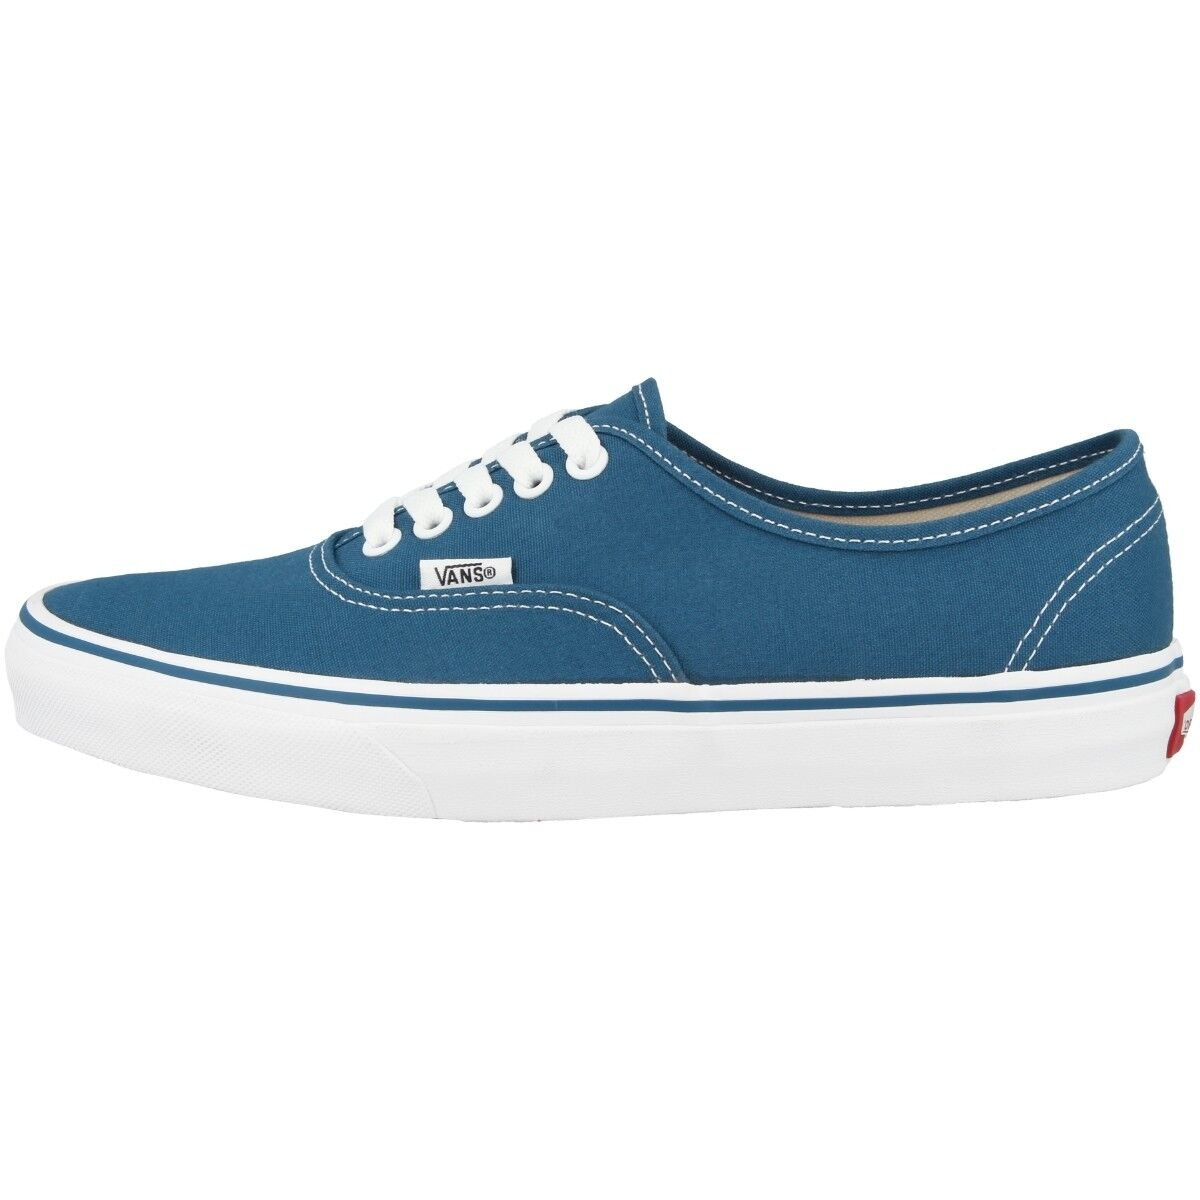 Vans Authentic Schuhe Low Cut Freizeit Sneaker Classics Sneakers navy EE3NVY